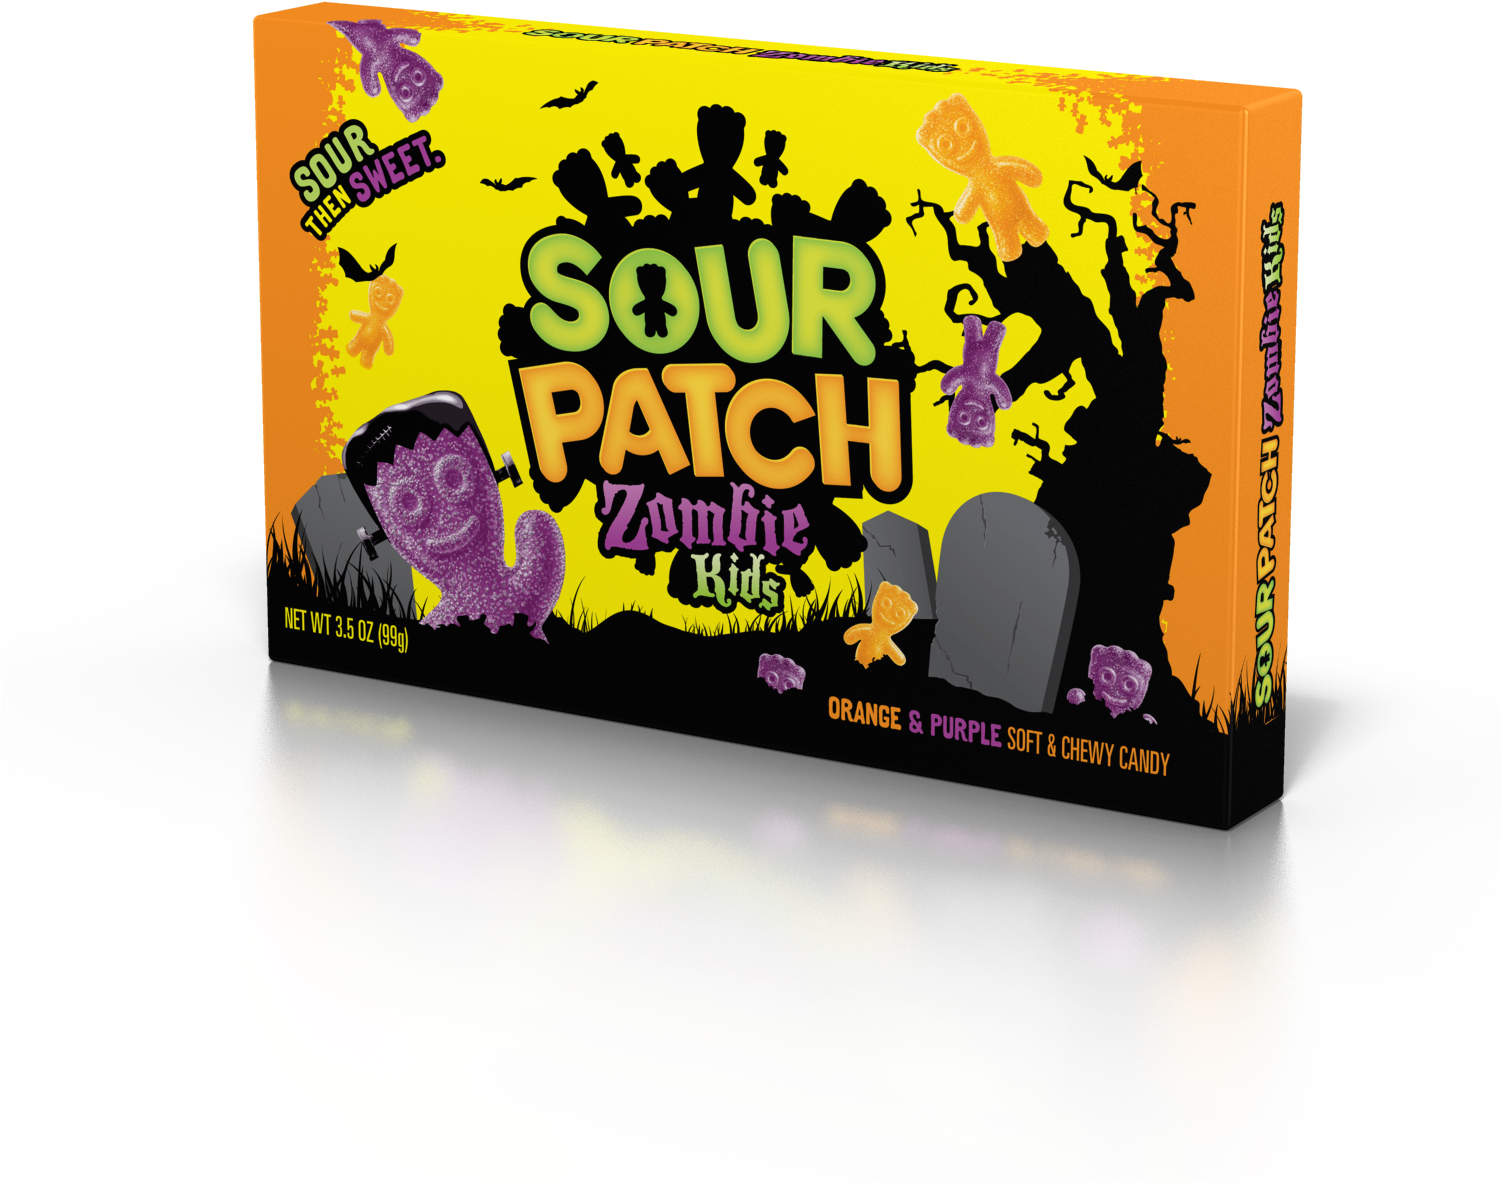 Sour Patch Kids, Zombie Kids Halloween Candy, - Sour Patch Kids (1500x1500), Png Download